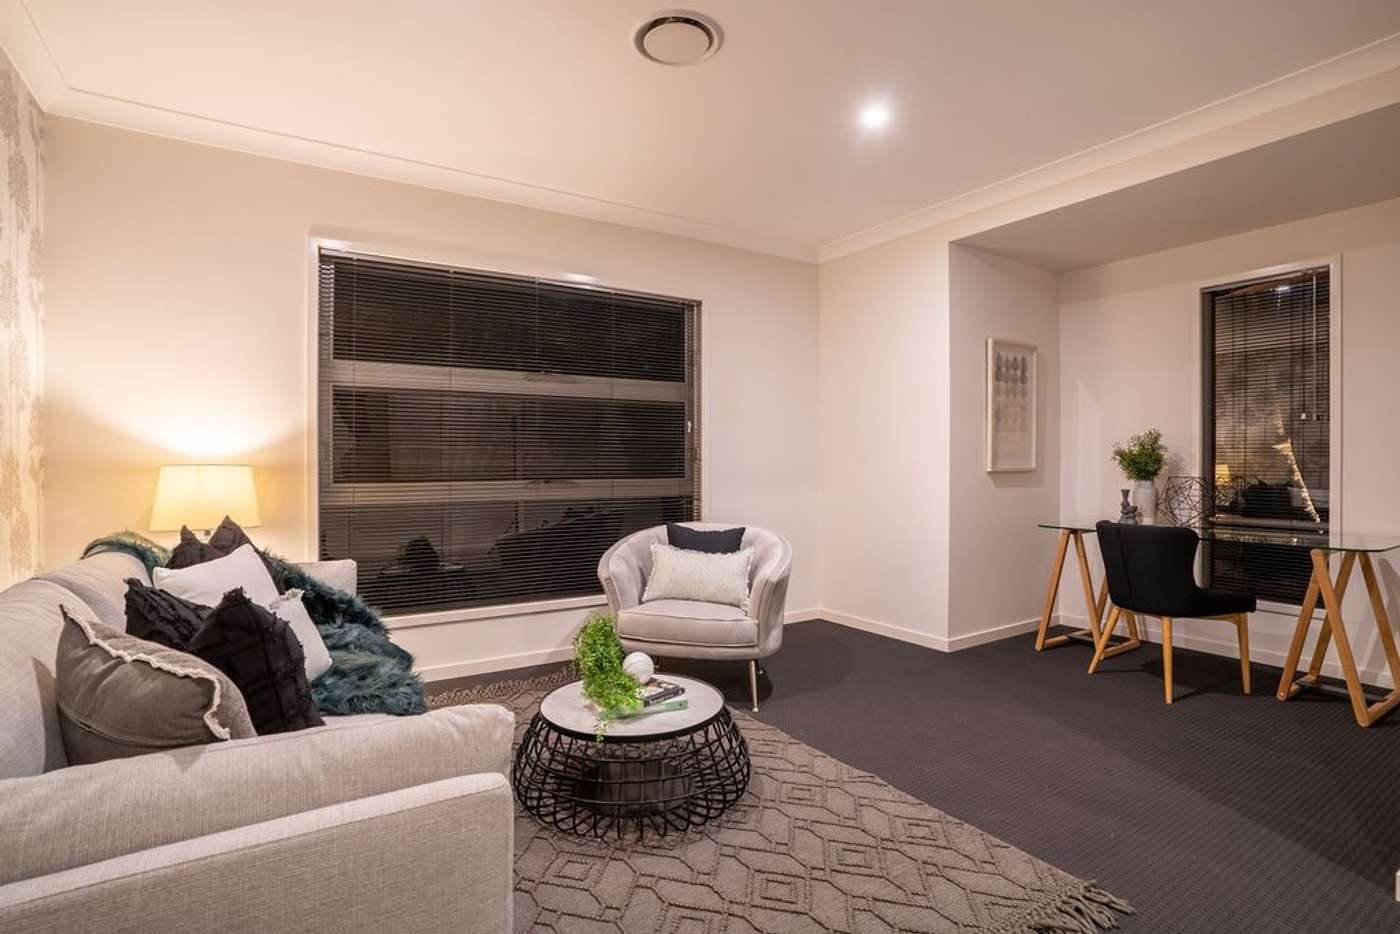 Sixth view of Homely house listing, 84 Cooper Crescent, Rochedale QLD 4123